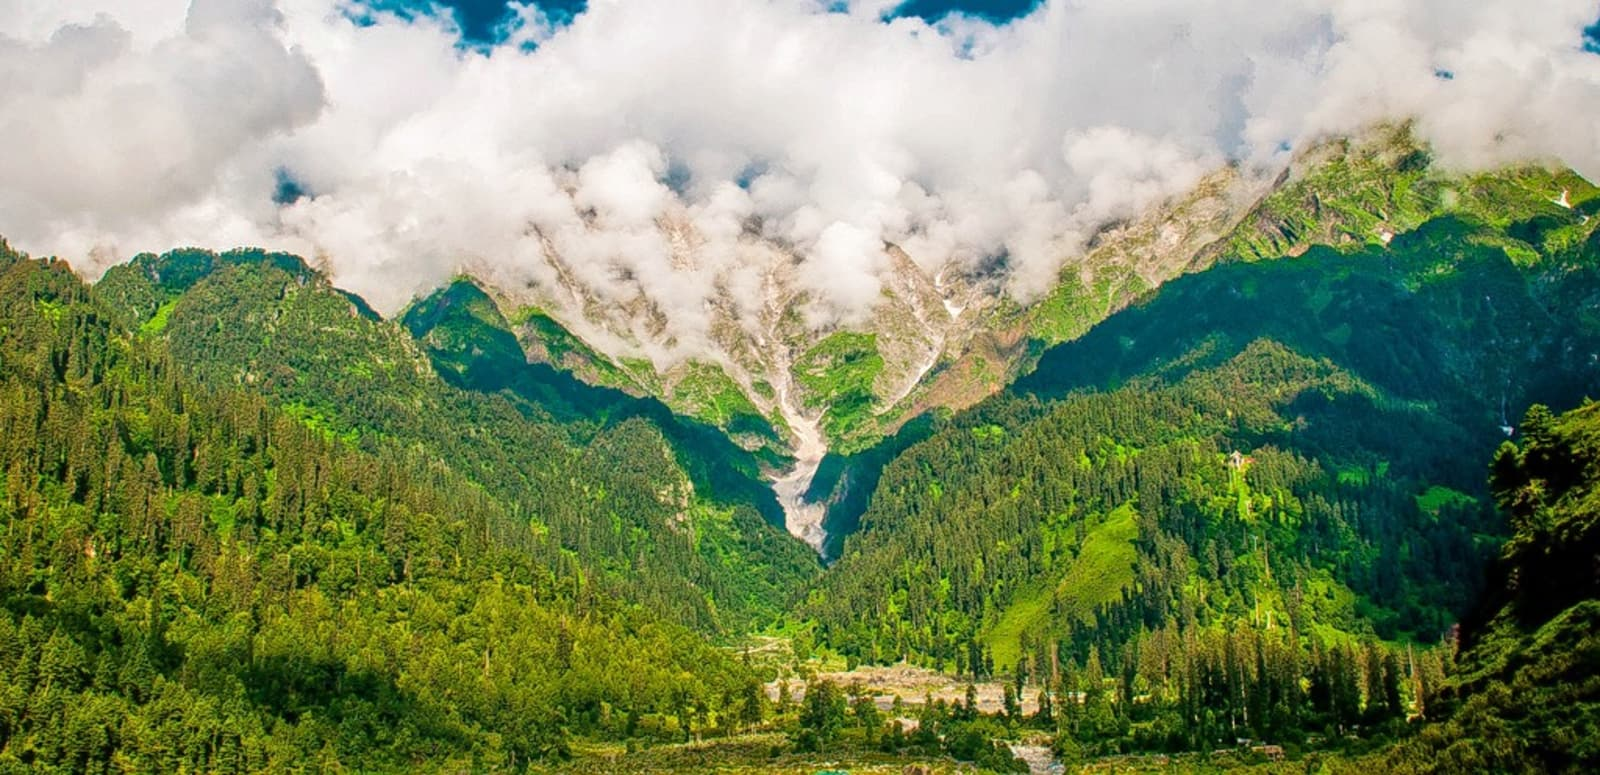 55 Manali Tour Packages: Book Manali Packages from ₹499 Only!